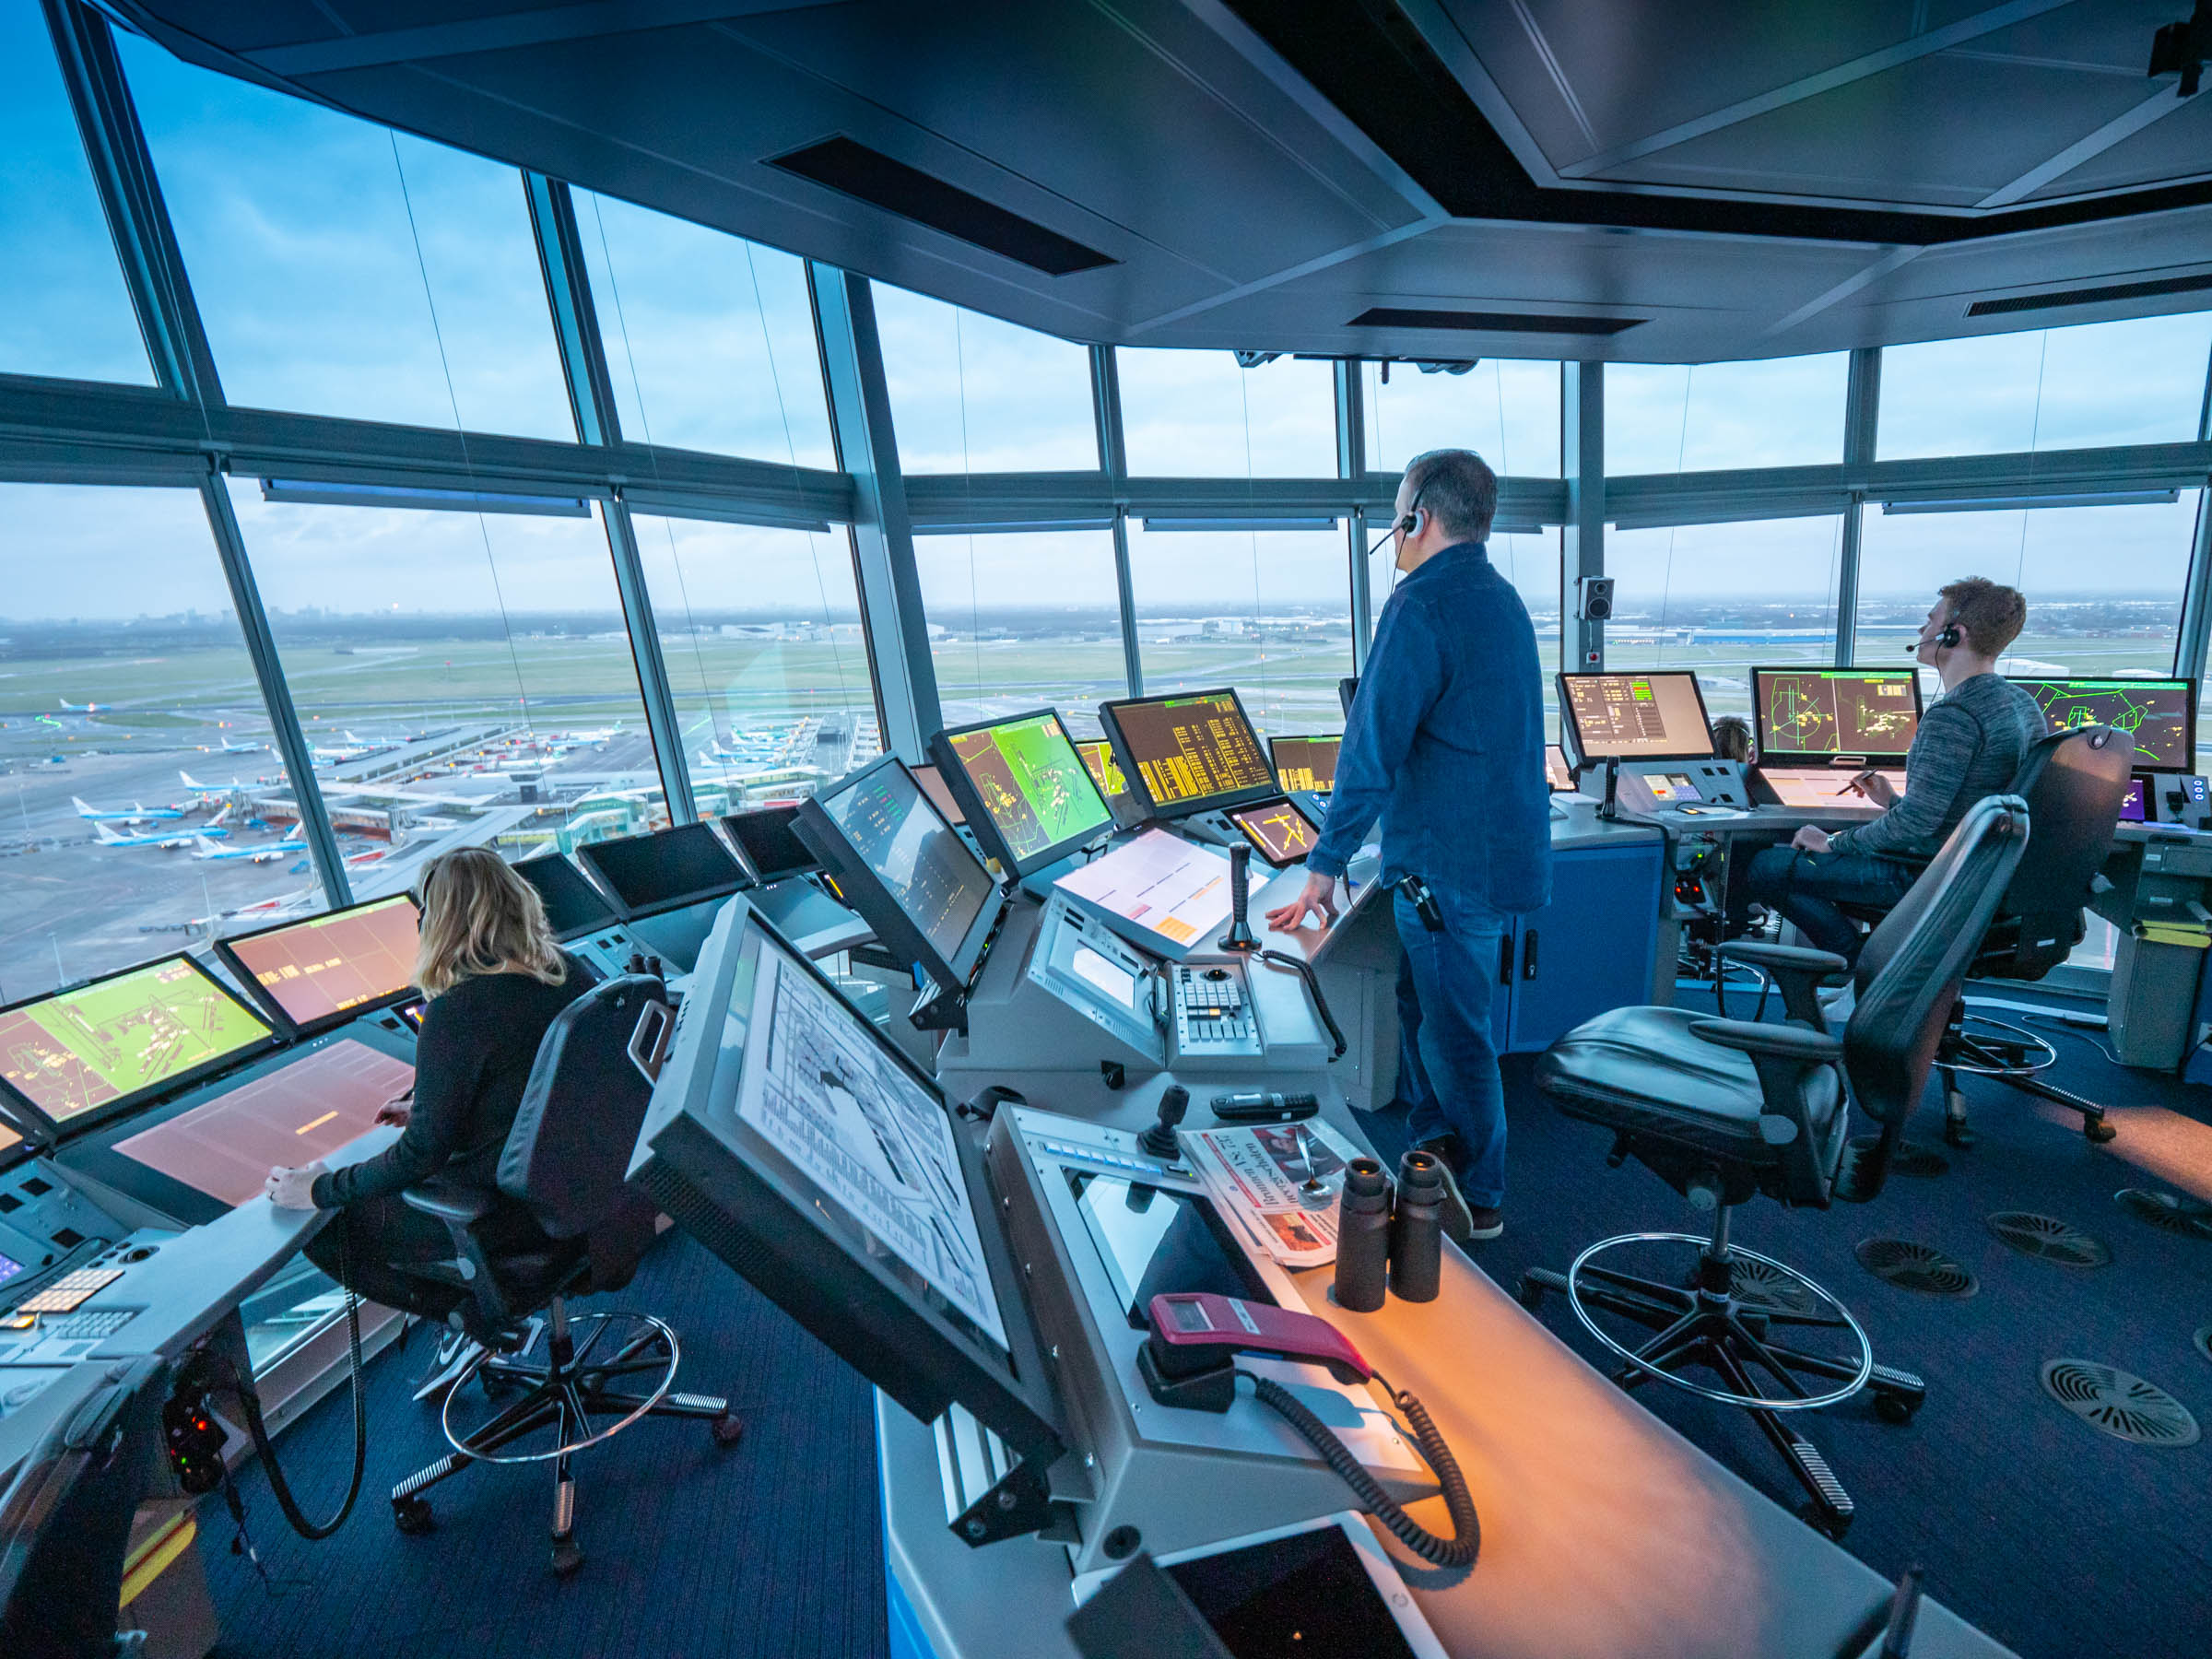 FOTO REPORT: Schiphol Air Traffic Control Tower